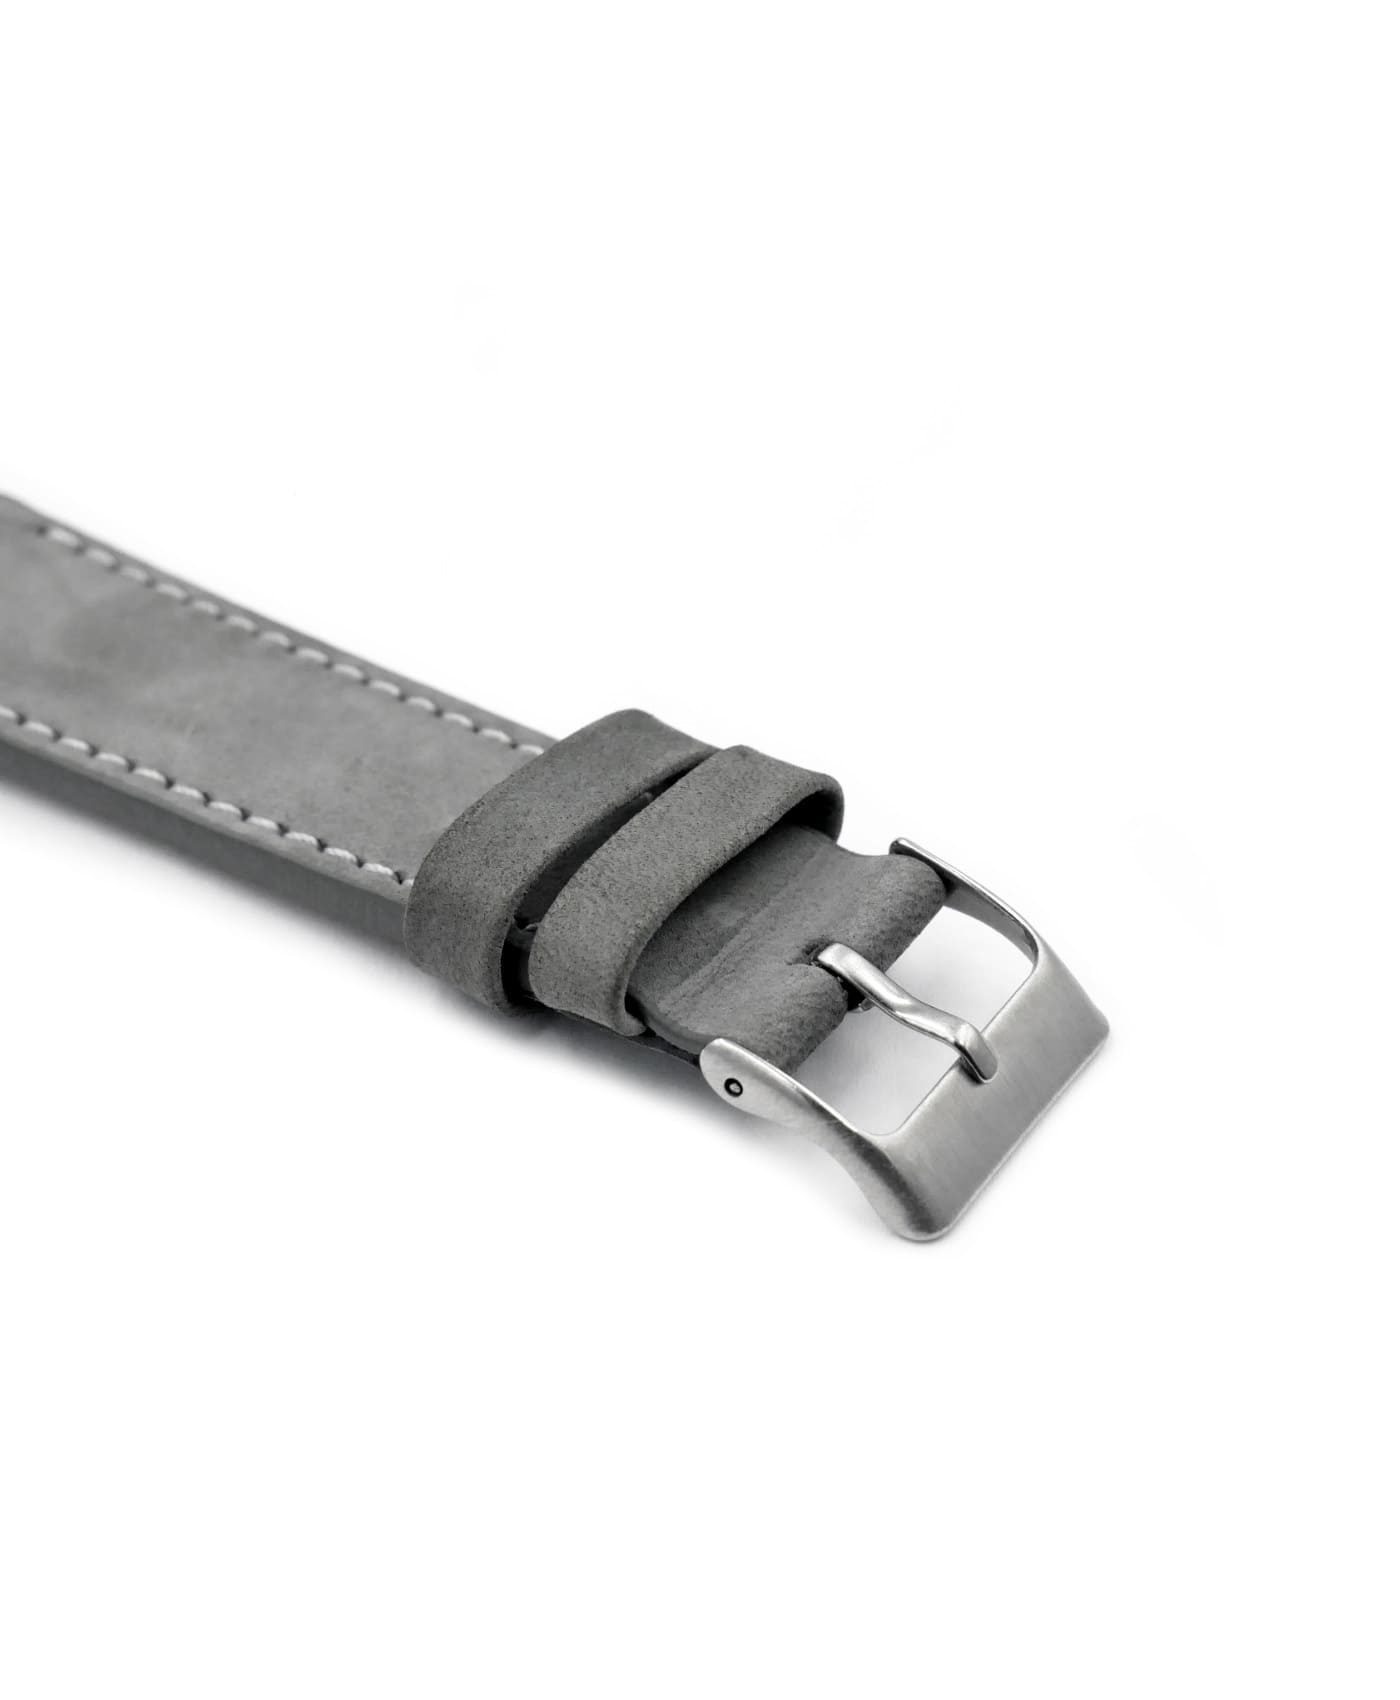 Pebro Premium Calfskin Watch Strap Grey No 582 buckle close up